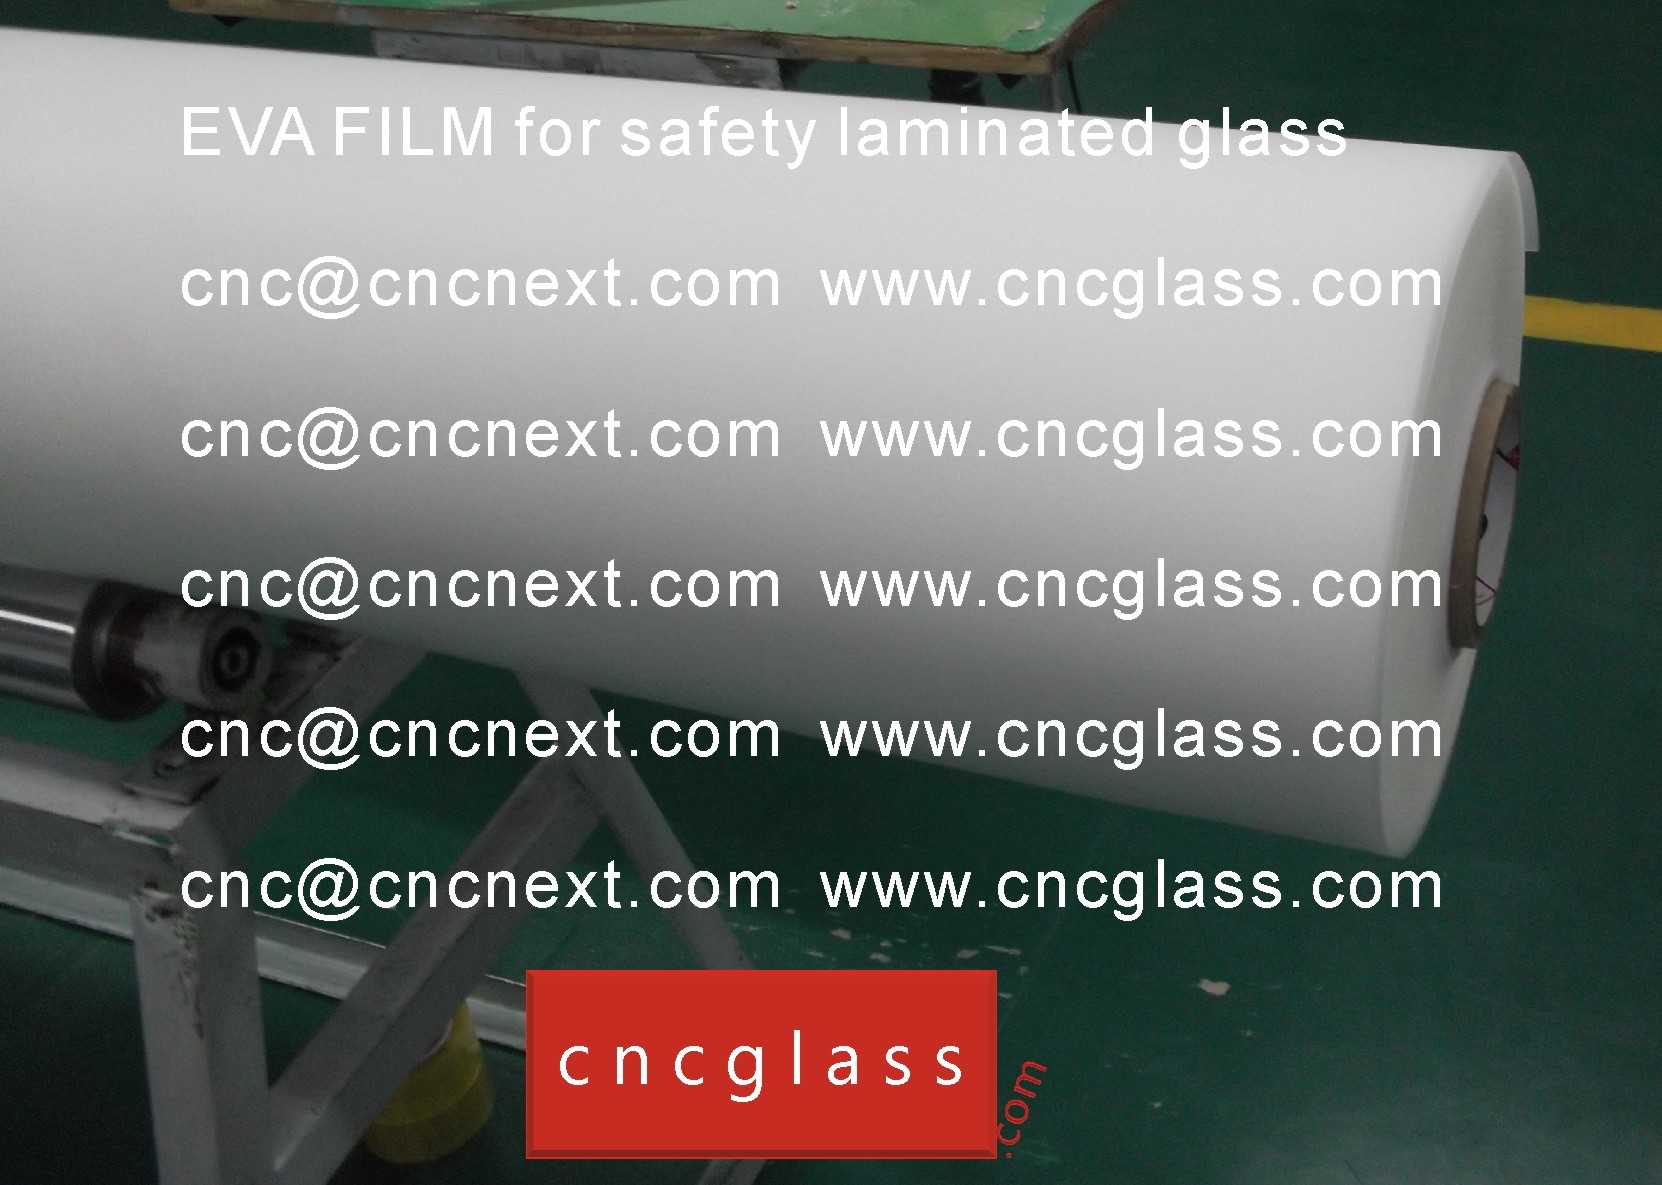 003 EVAFORCE EVA FILM FOR SAFETY LAMINATED GLASS